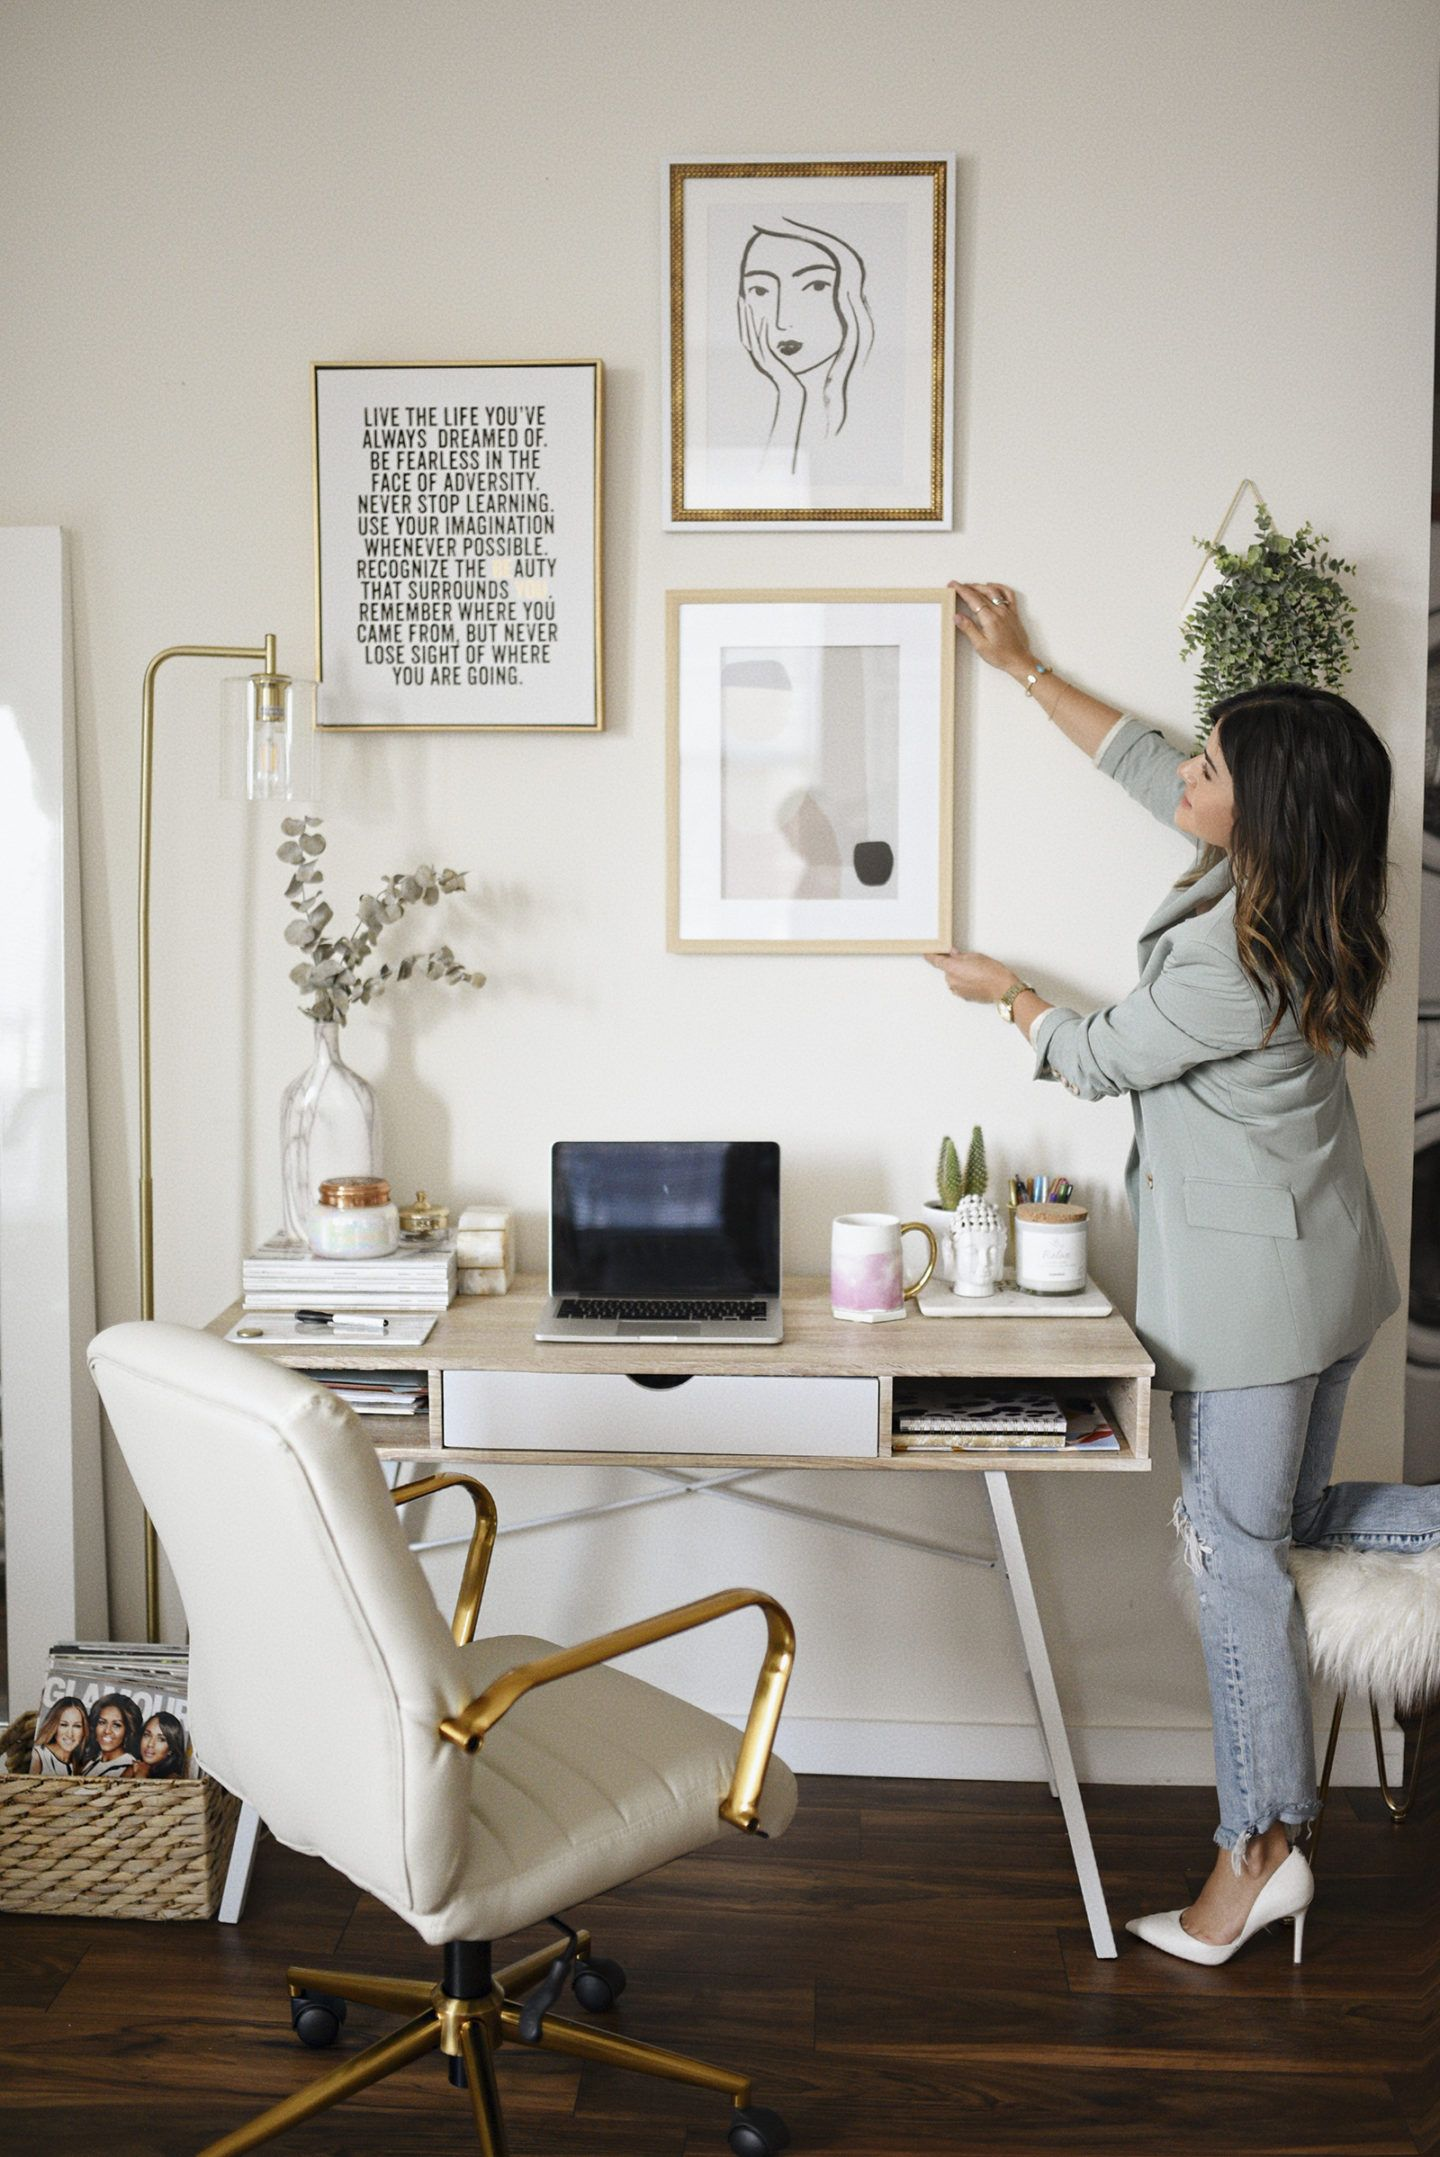 Home office decor ideas for those who enjoy a space with neutral colors, marble accents, minimalist wall art and simple but eyet chic gold accessories.